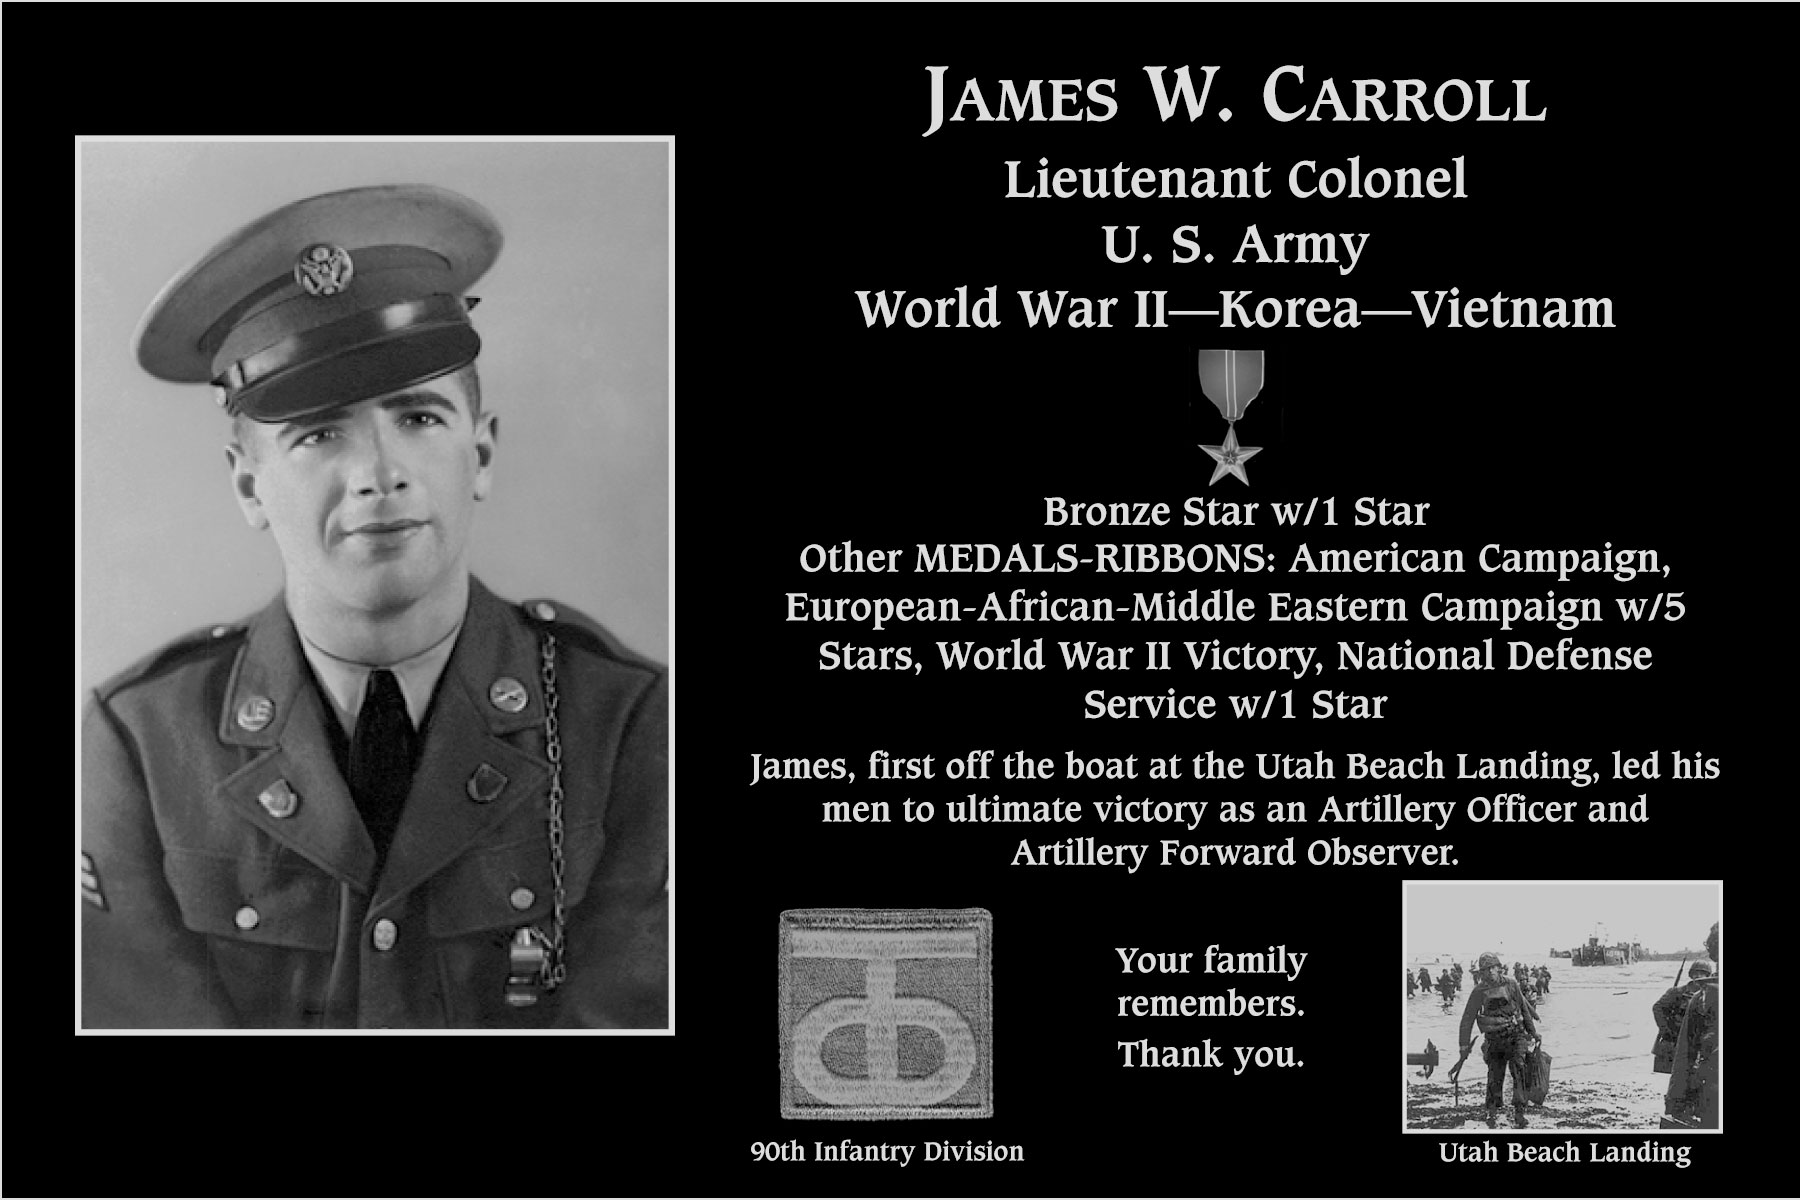 James W. Carroll, M.D.